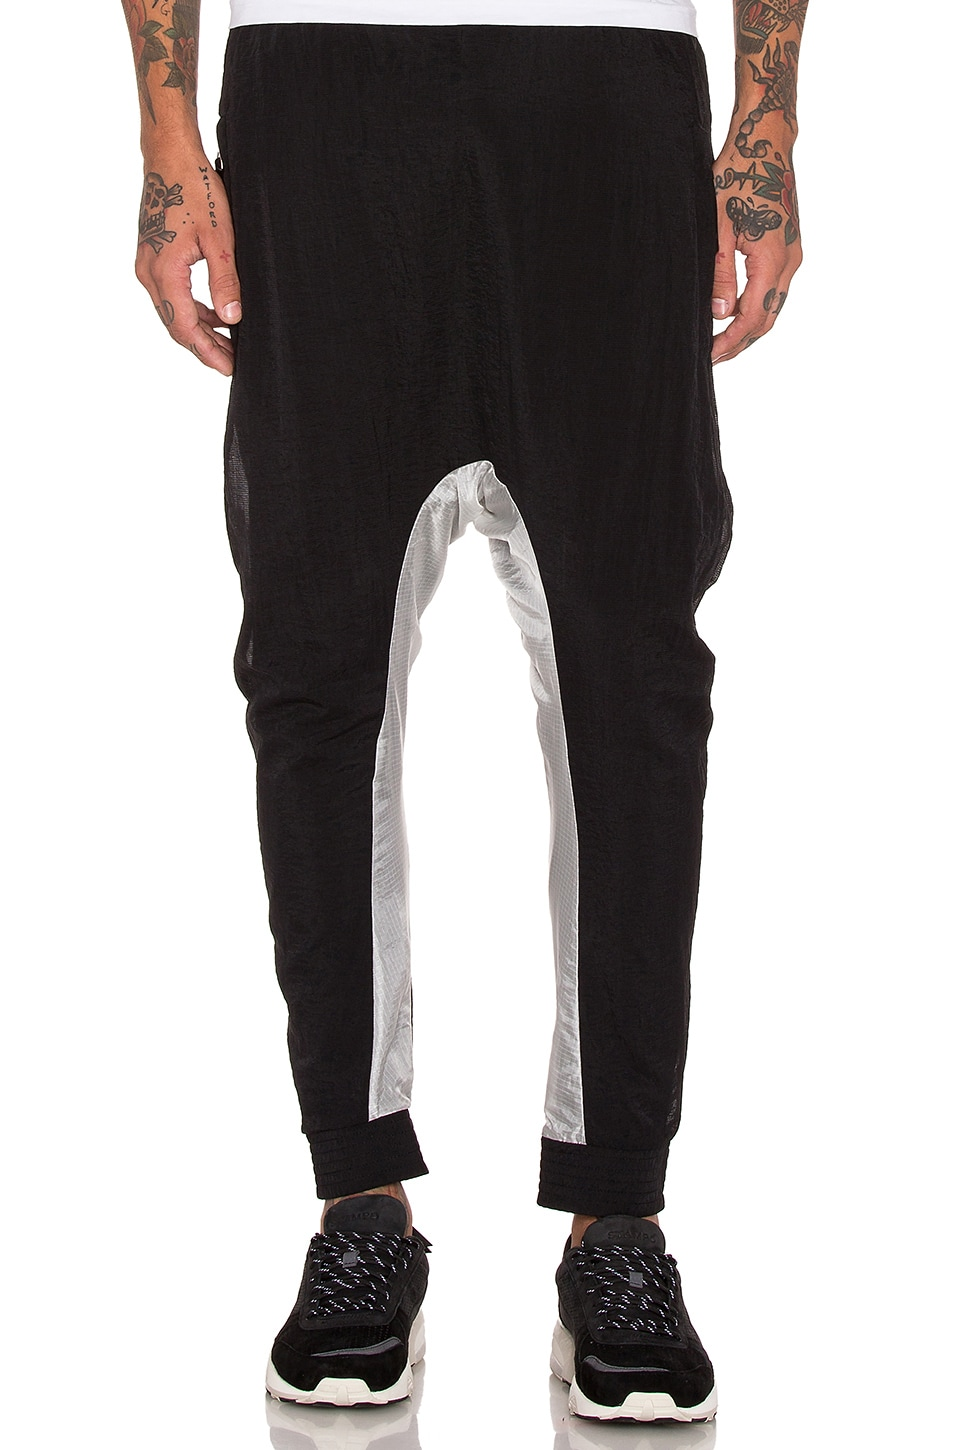 11 by Boris Bidjan Saberi Drop Crotch Pant in Black & Transparent